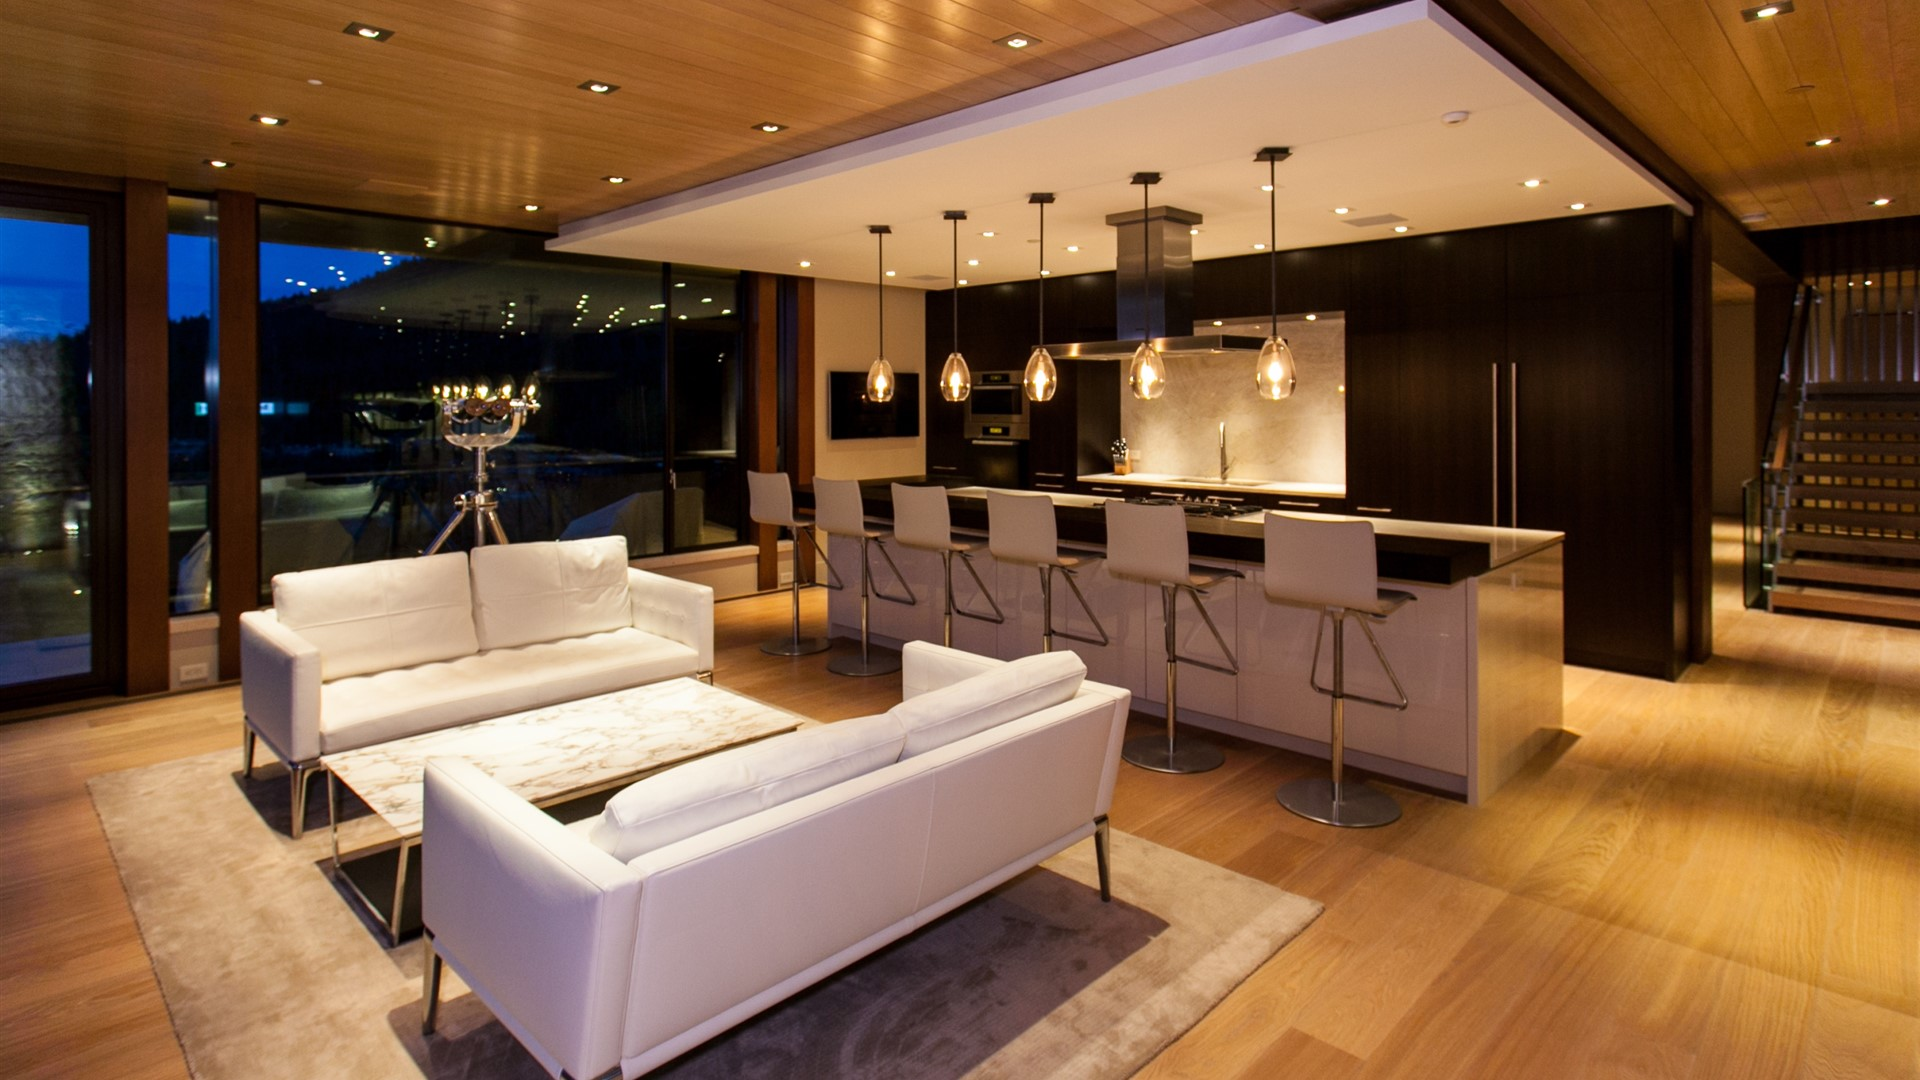 Muse Residence II with Hakwood Bespoke flooring